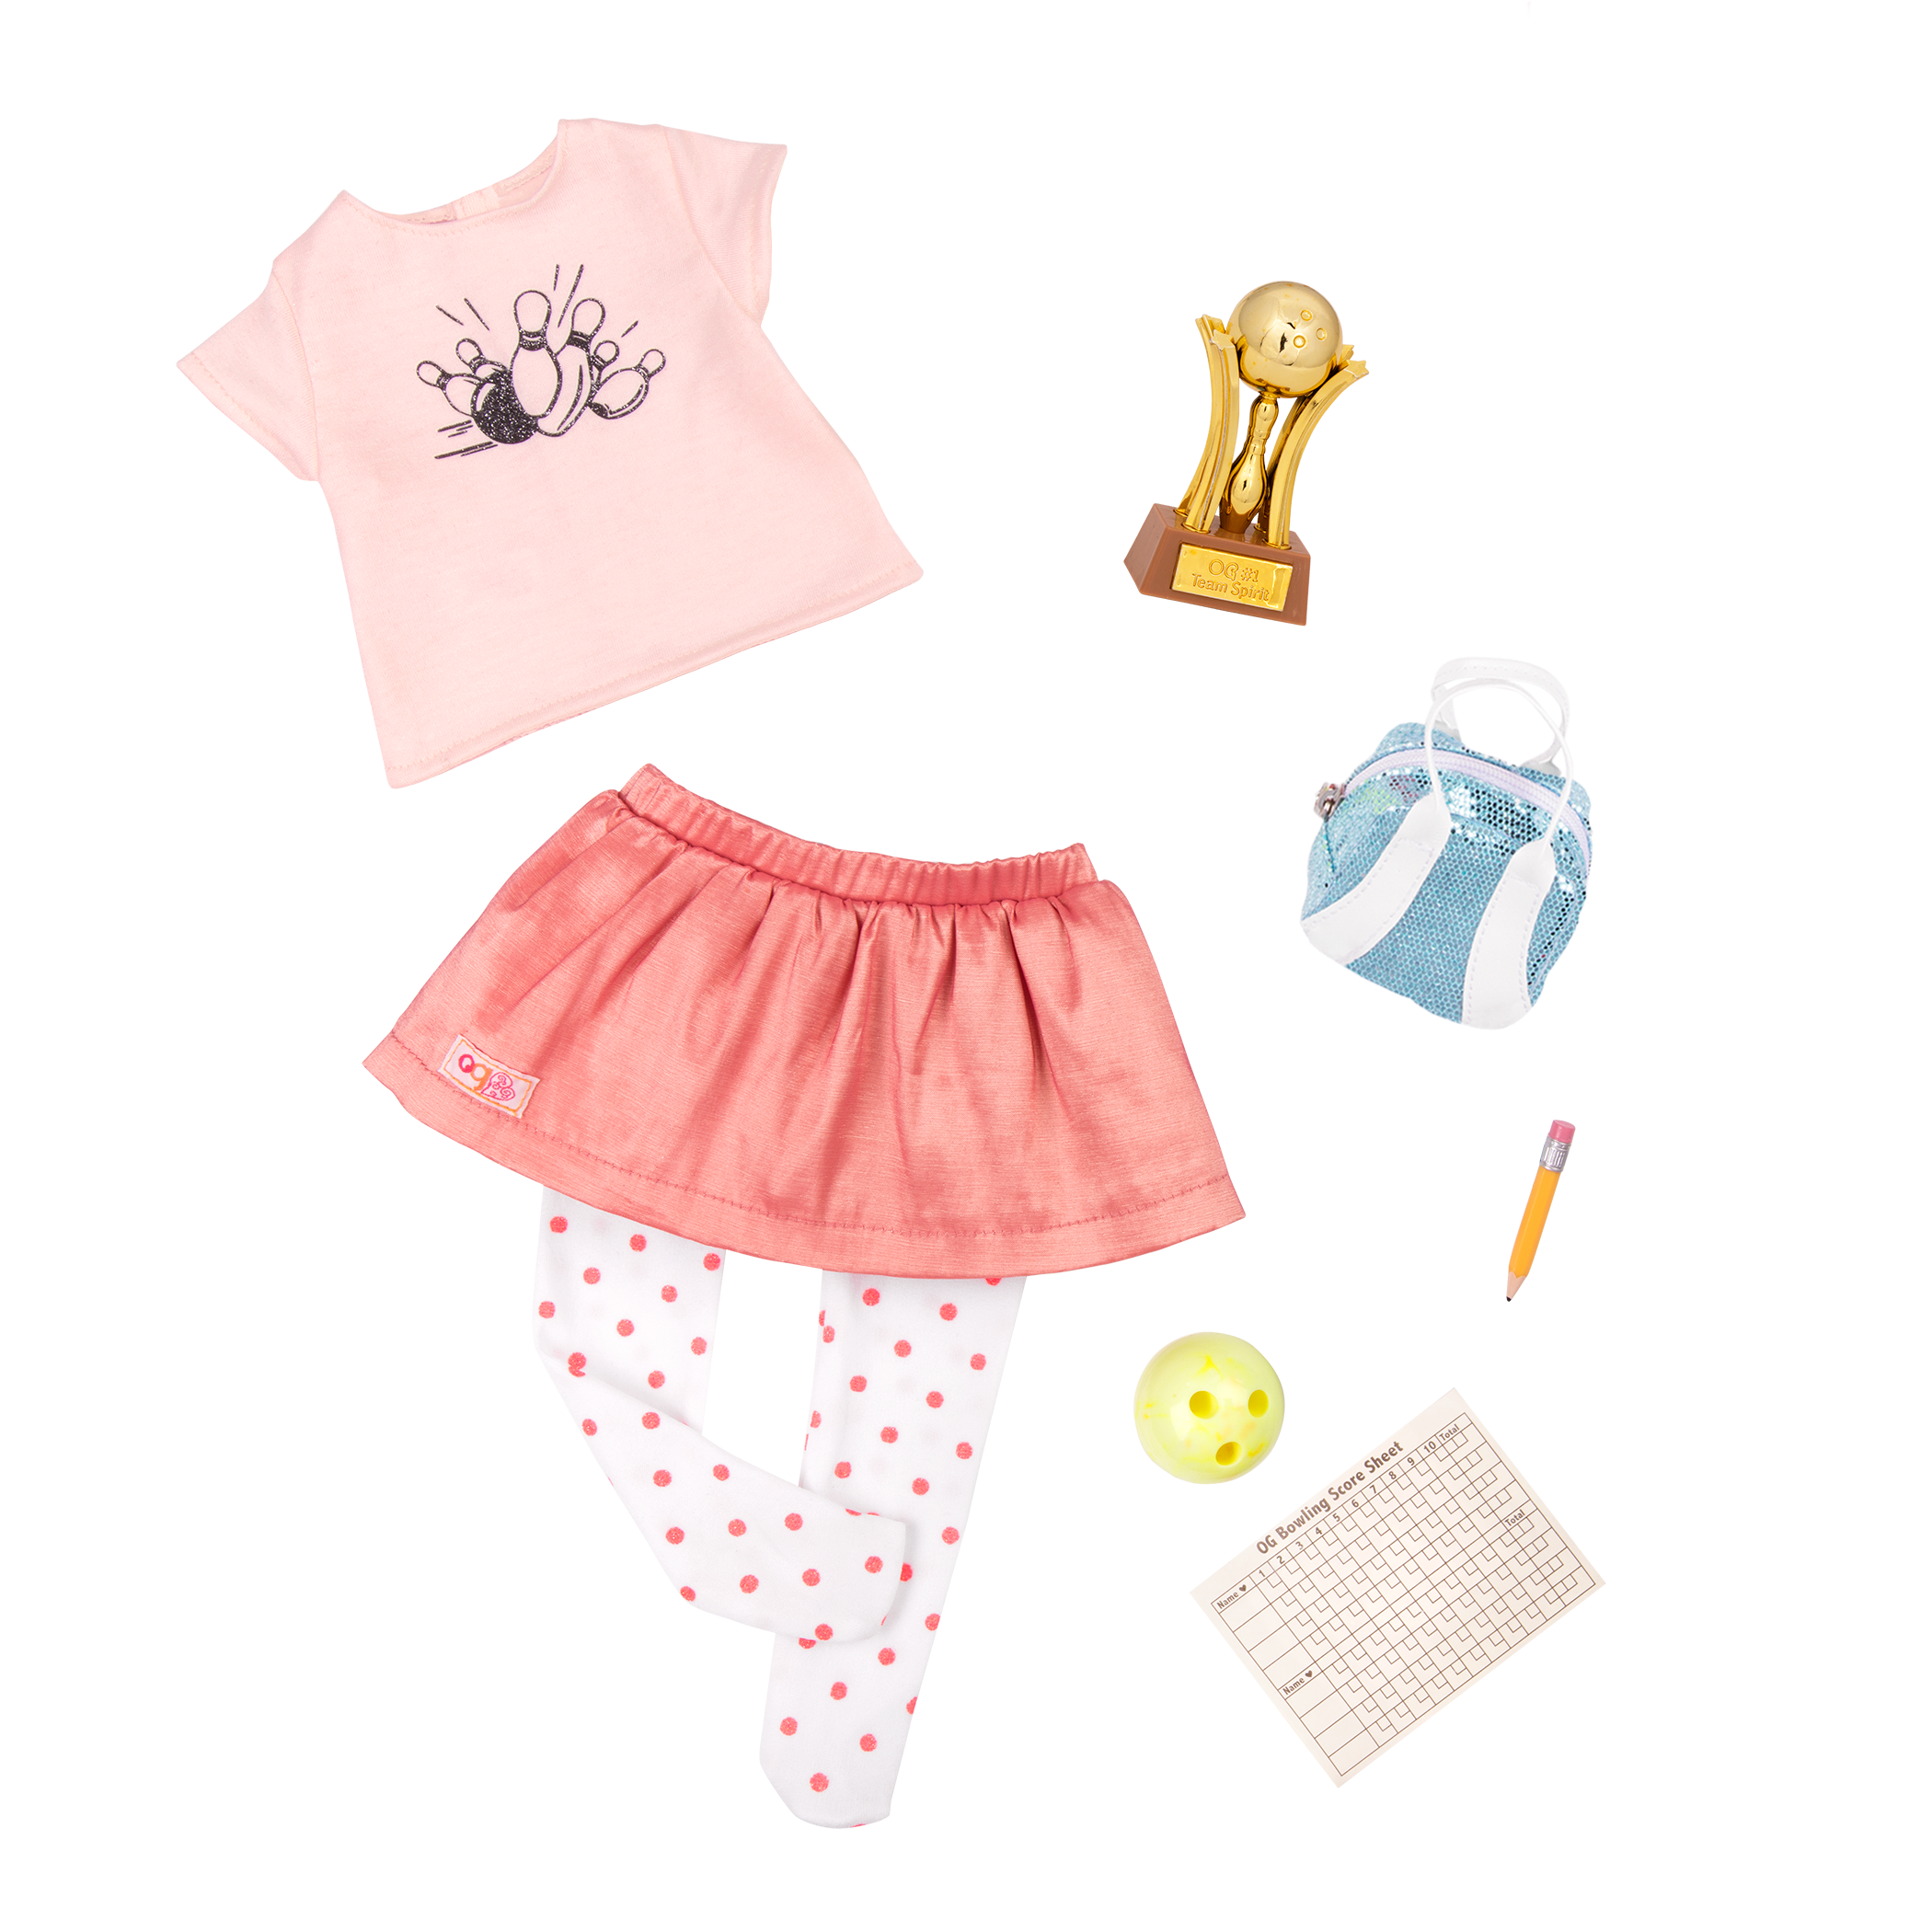 Detail of bowling accessories and casual outfit